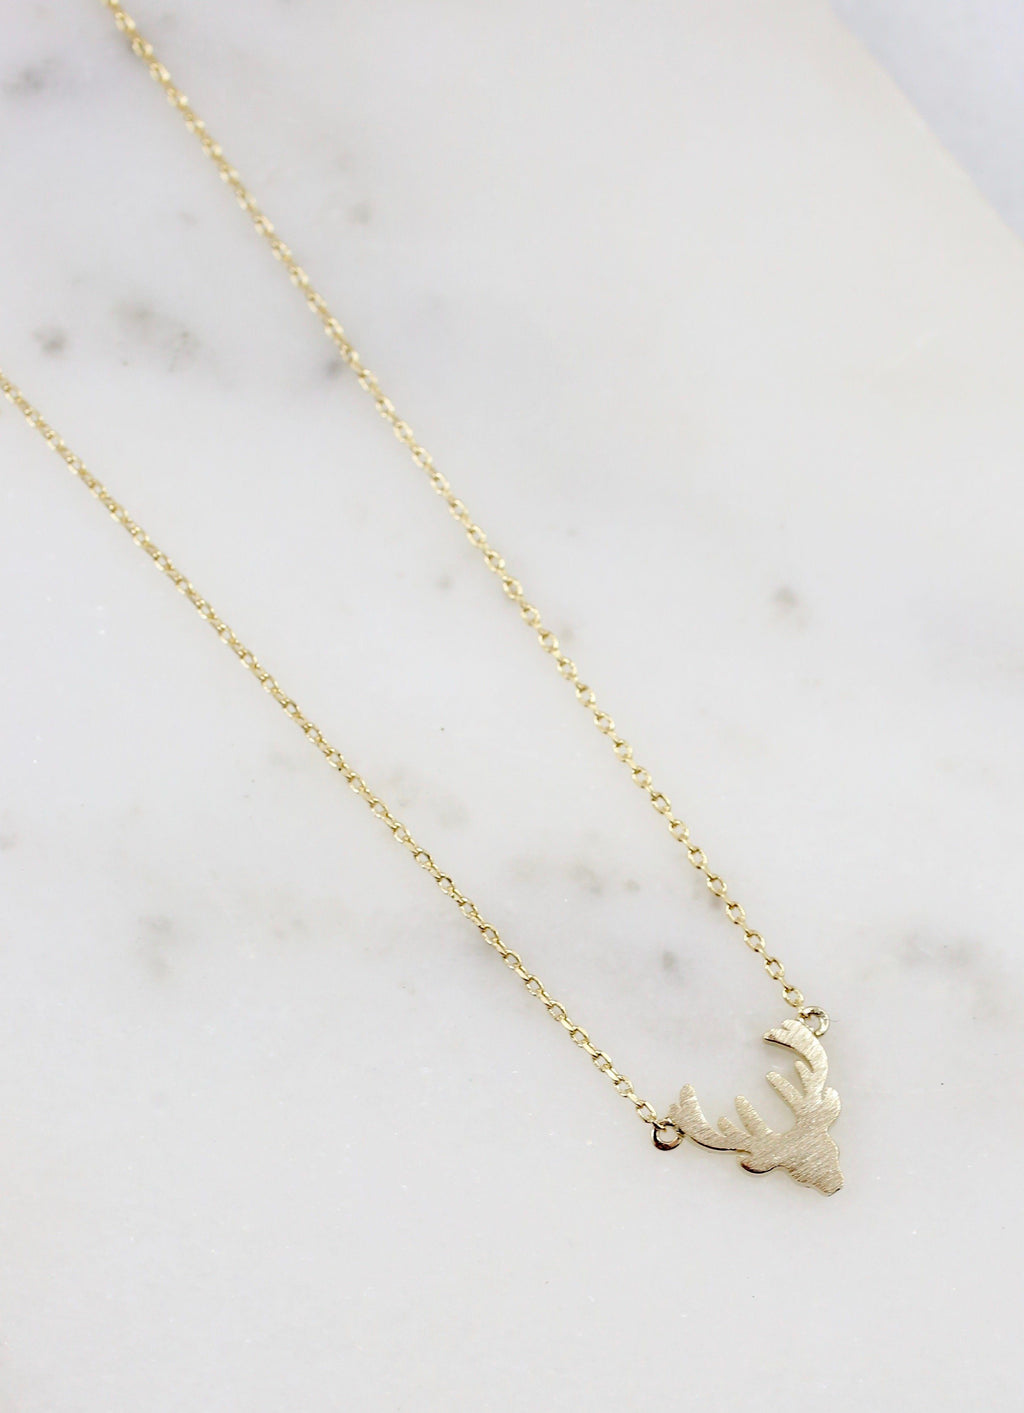 Prancer Gold Deer Necklace - Caroline Hill